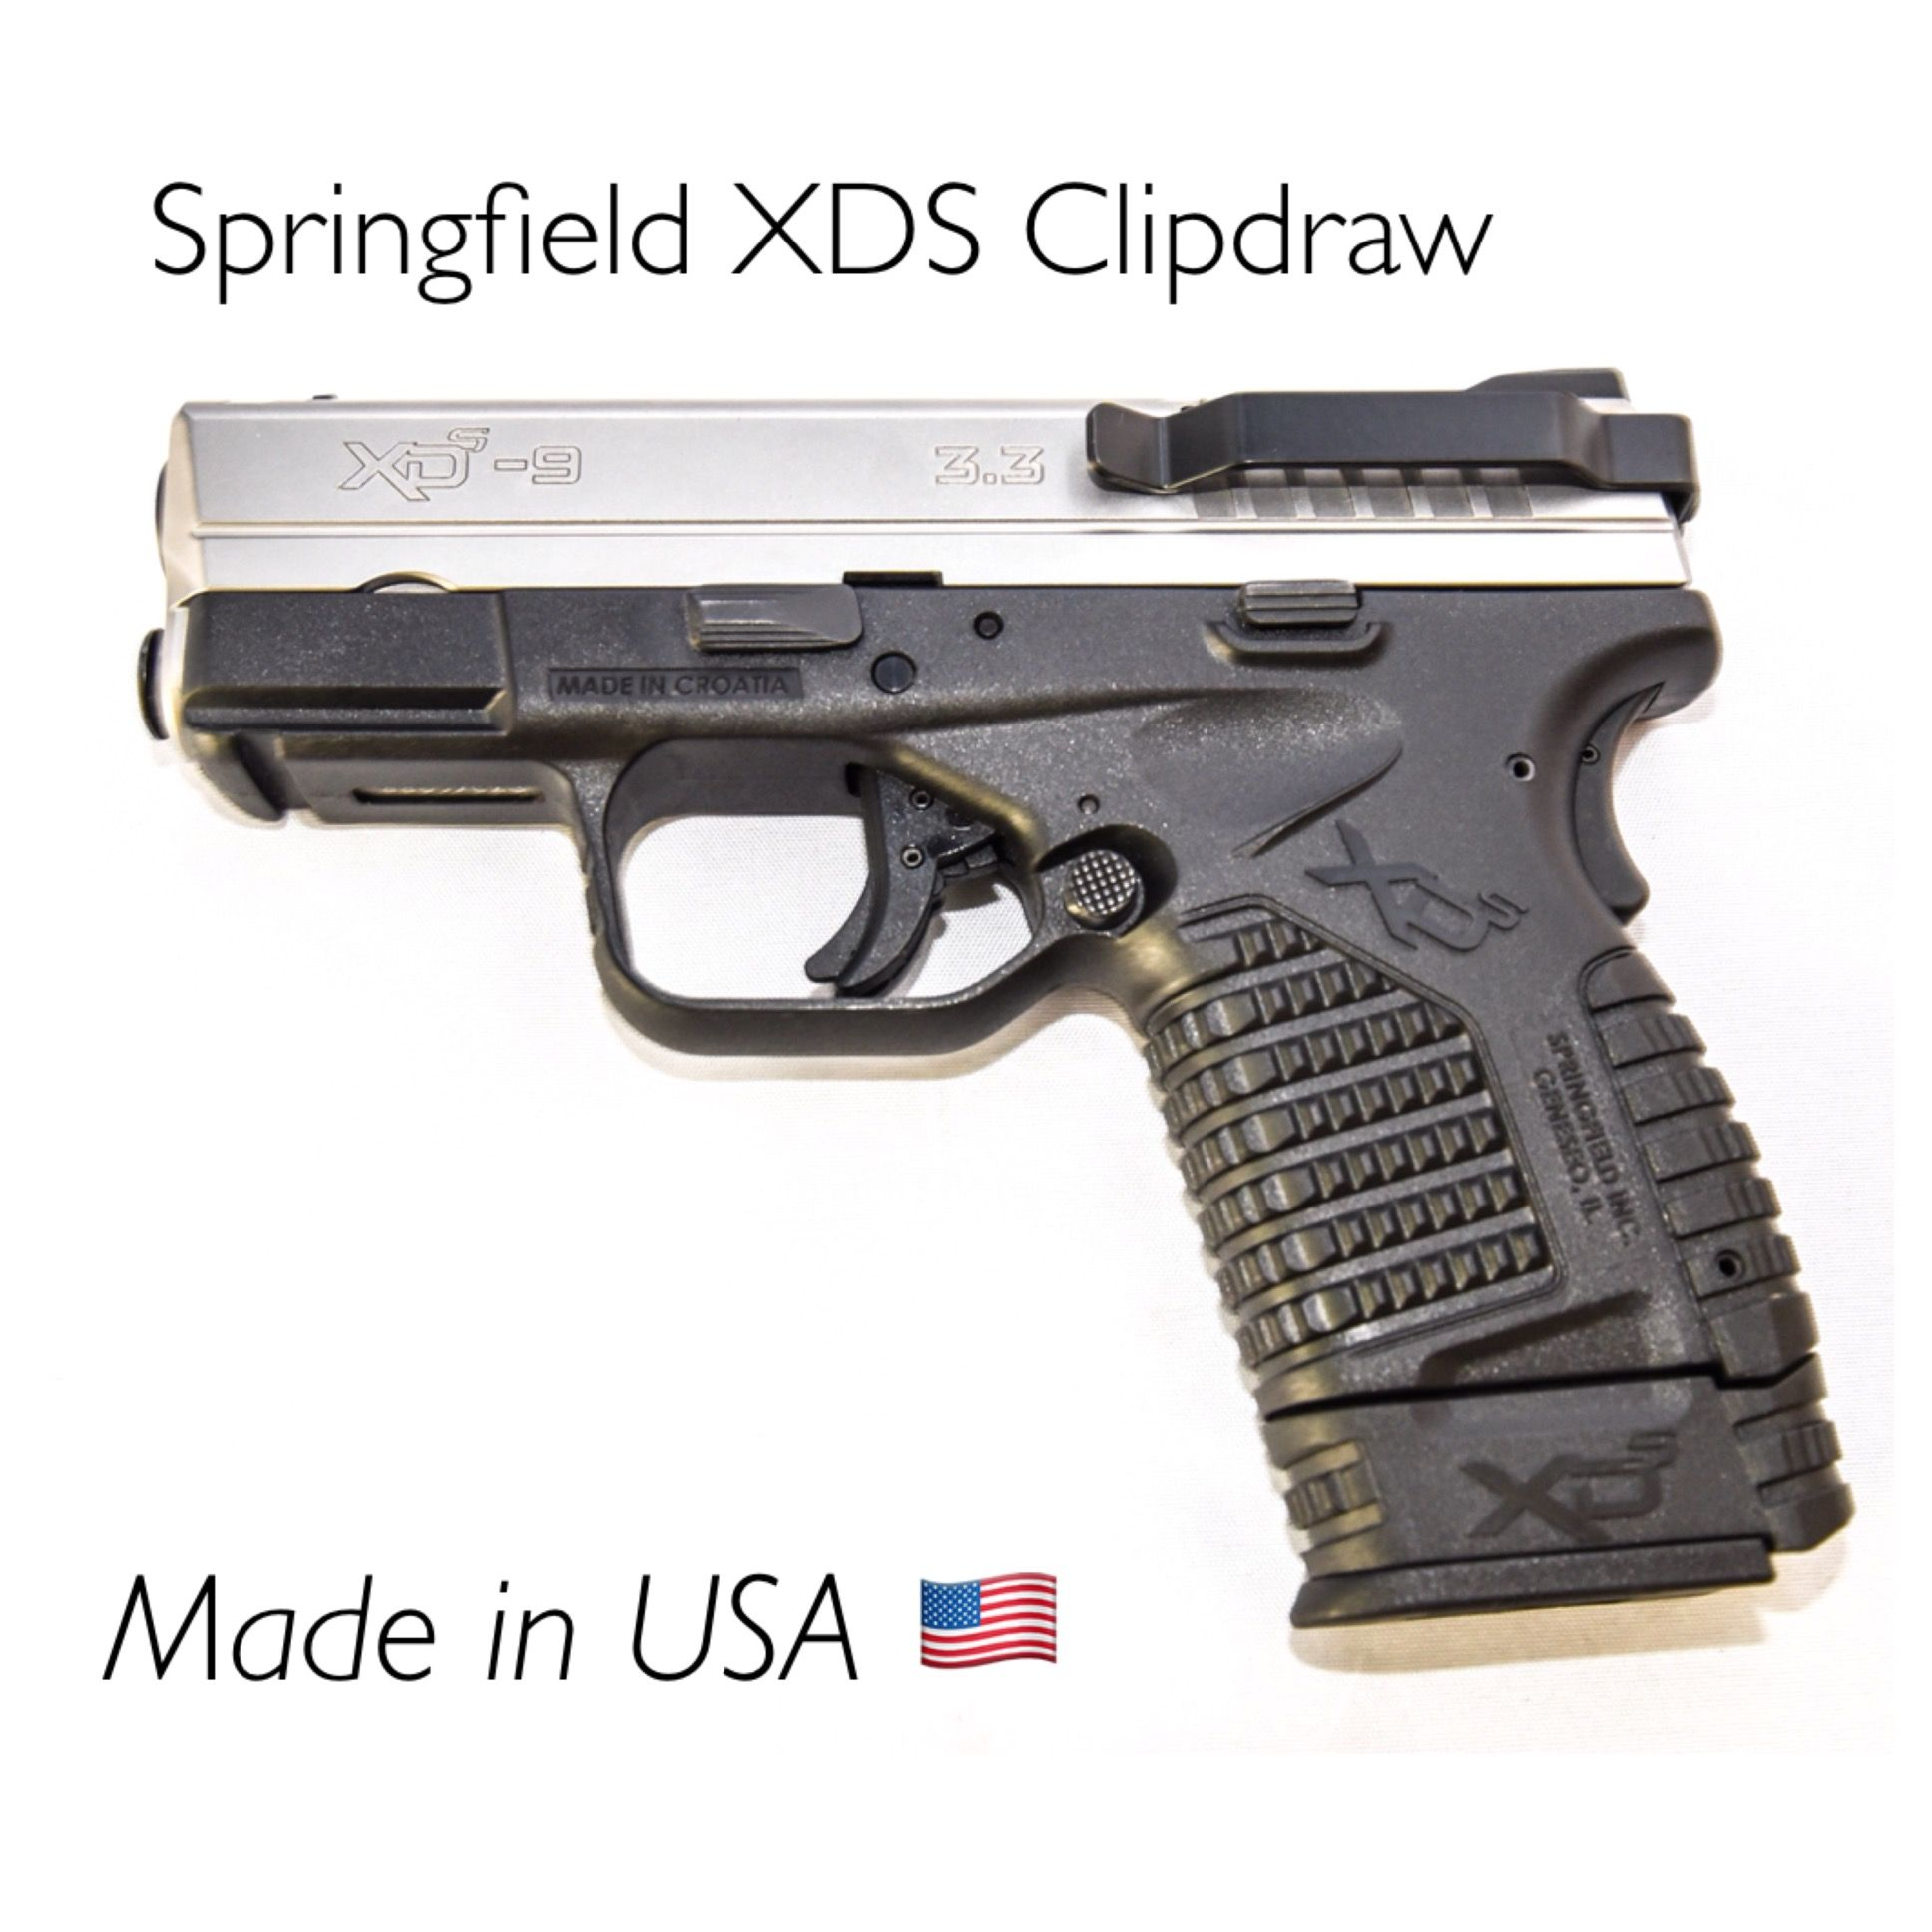 Holster-less Concealed Carry for your Springfield XDS 9MM or .45 ...